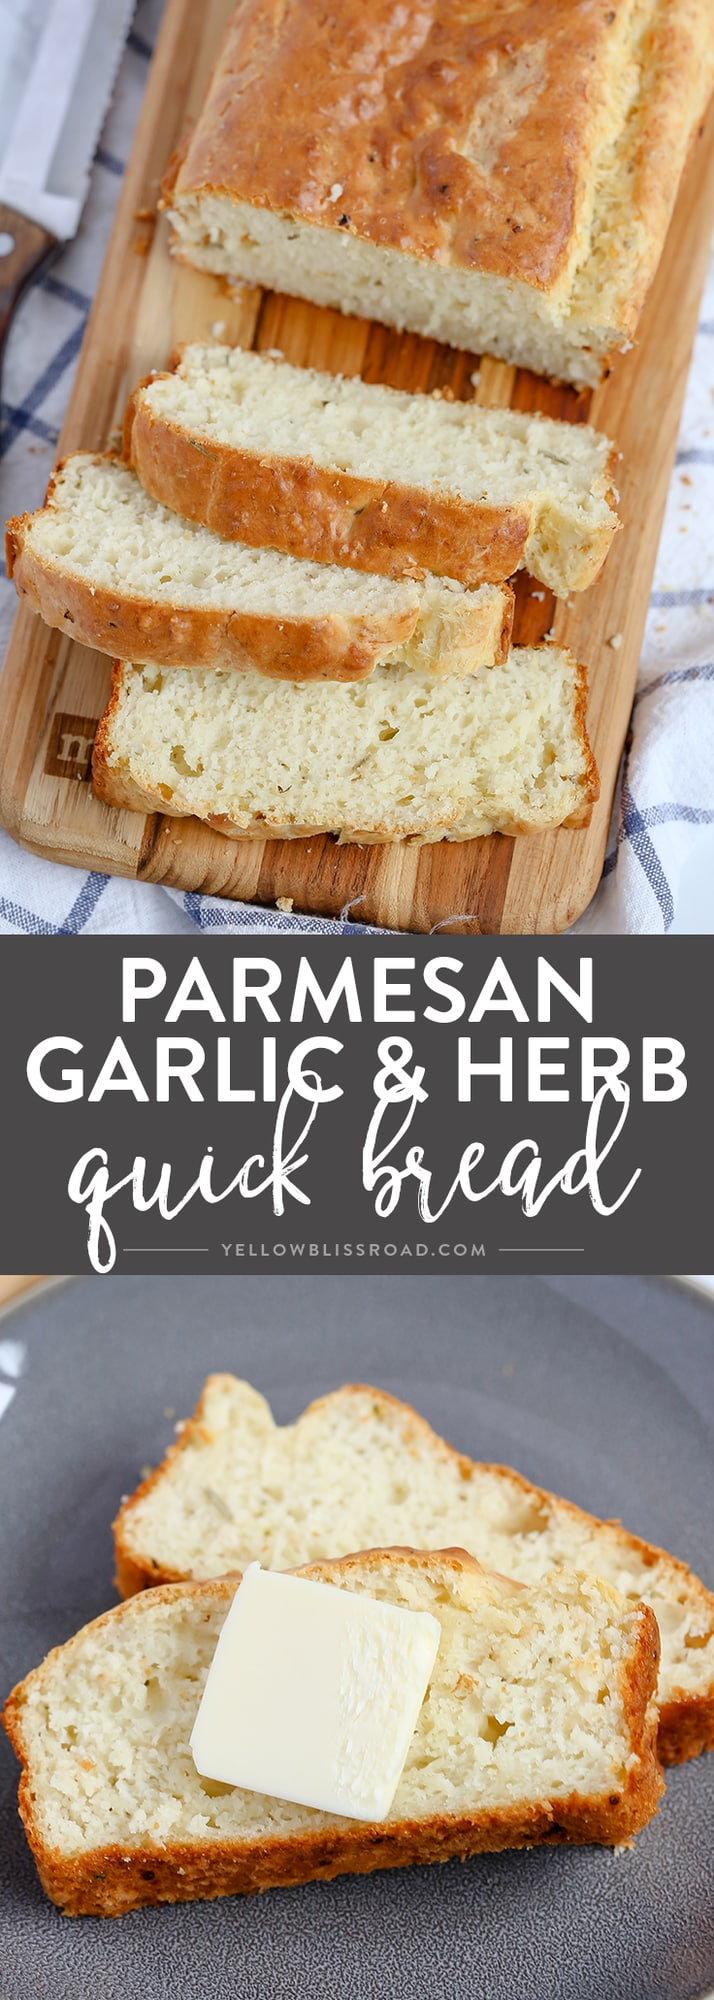 This Parmesan Garlic Herb Quick Bread is a tender, flavorful, savory quick bread that makes a great side dish to any meal.